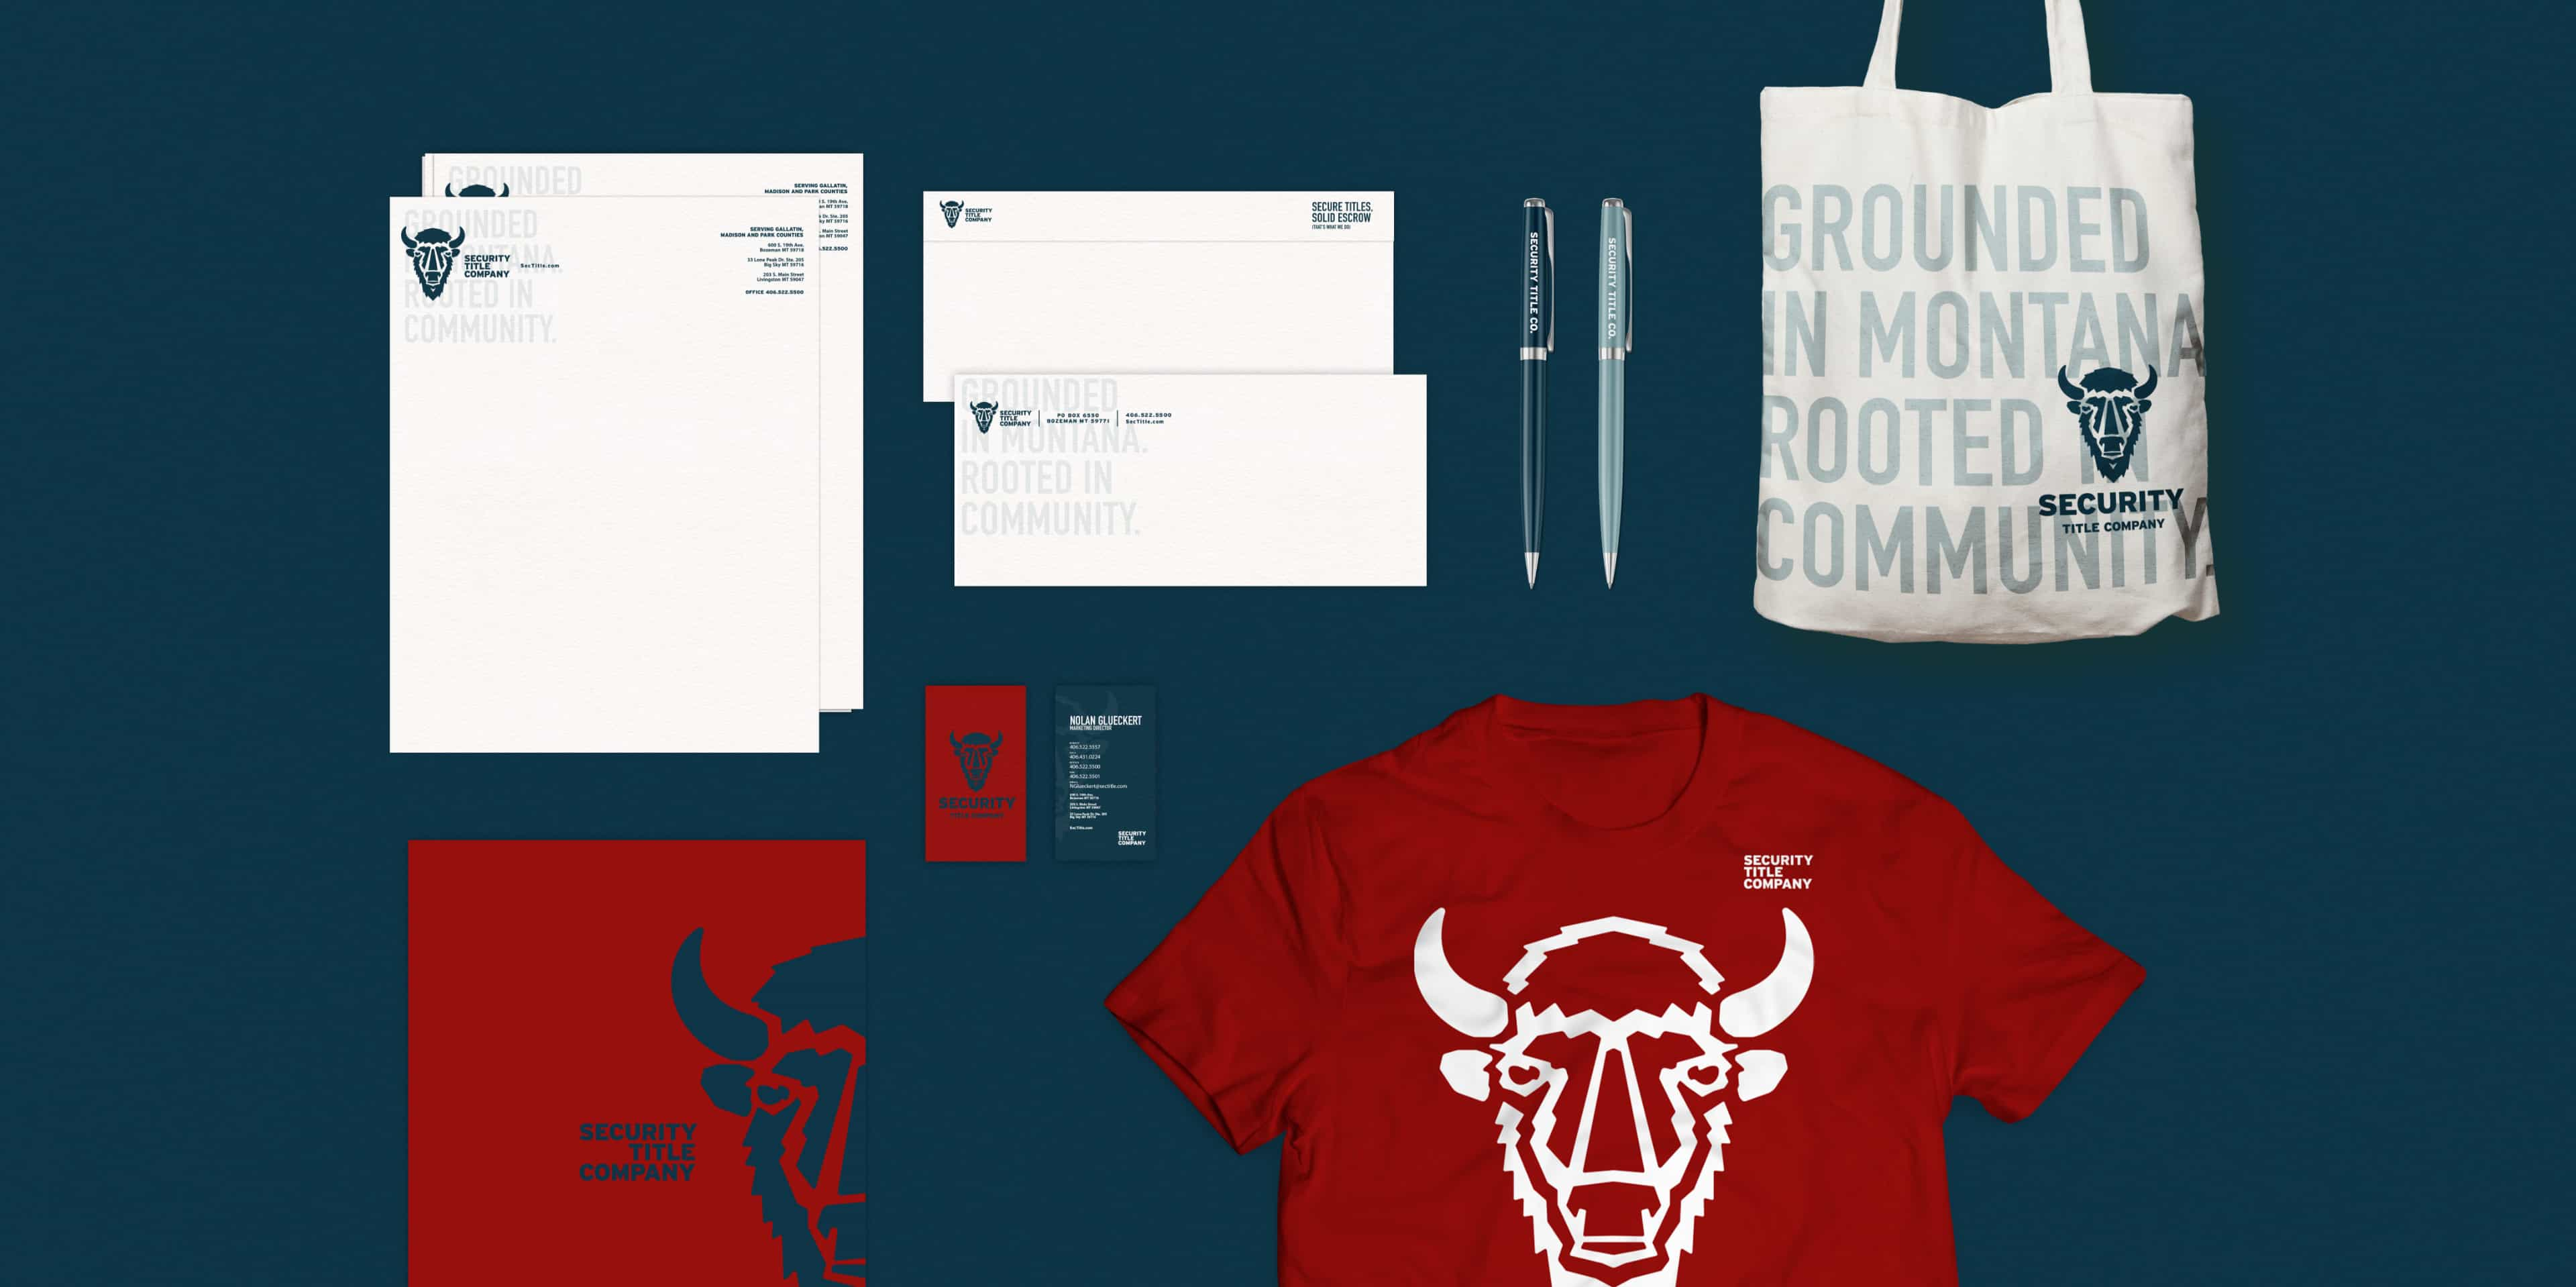 Security Title Co merchandise and business set design